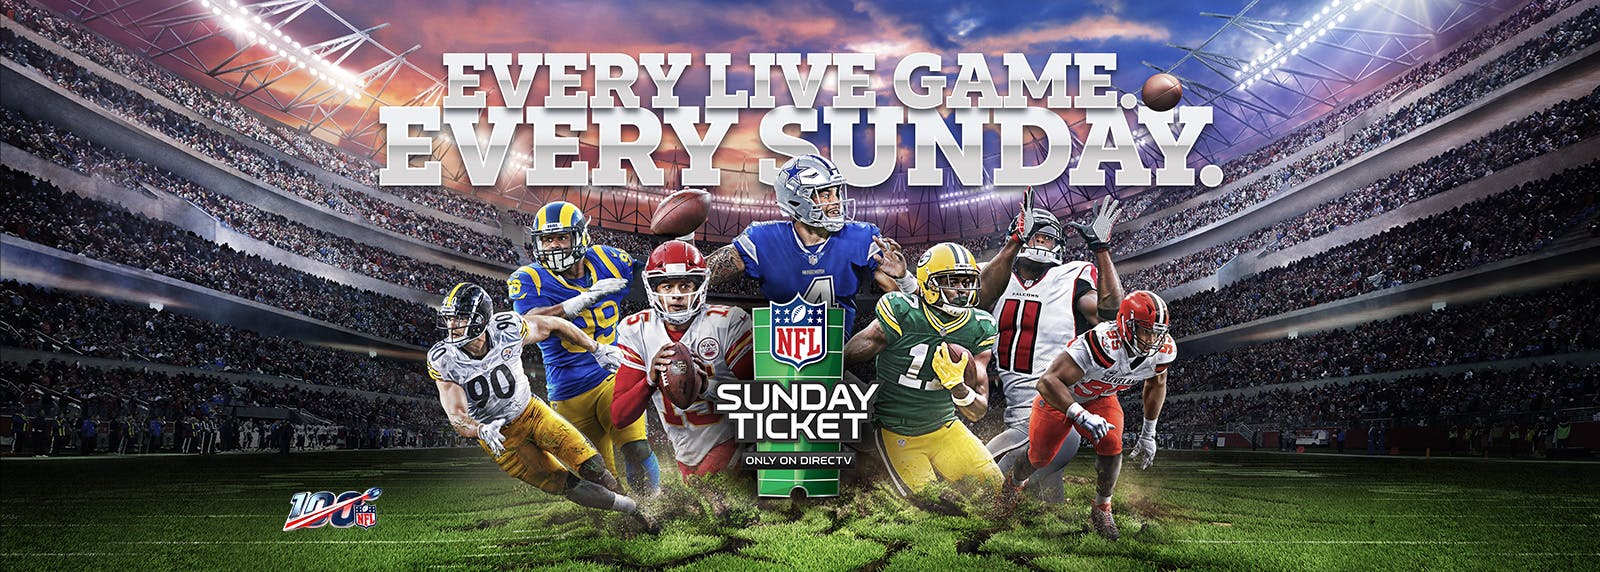 titans chargers nfl sunday ticket streaming cbs nfl afc